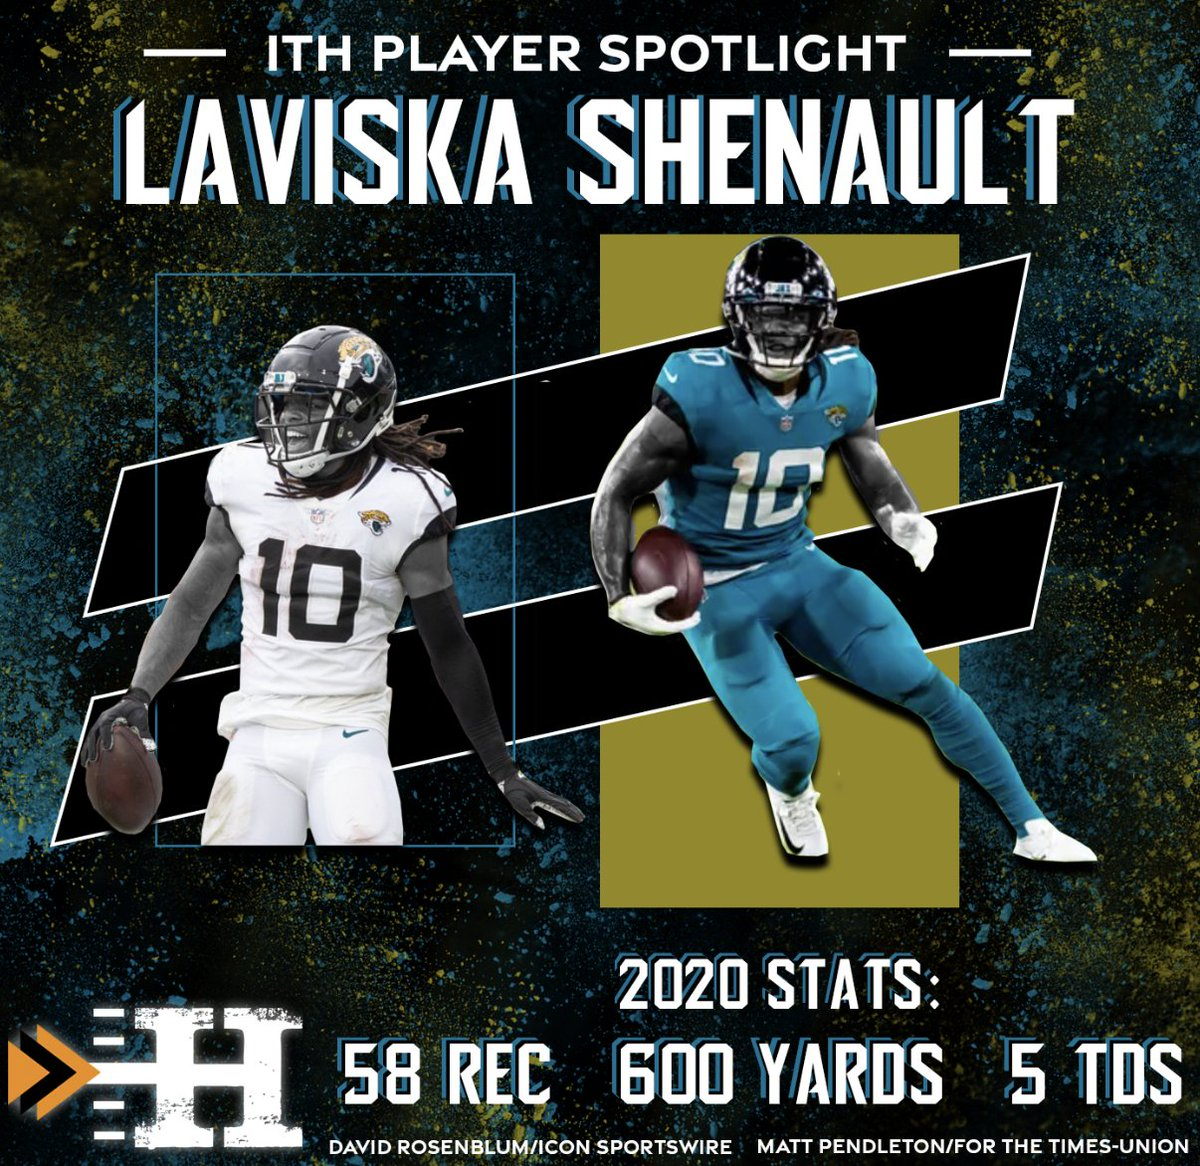 This weeks ITH Offensive Player of the Week is...  Laviska Shenault! The Jags found a GEM in Shenault!  Find our ITH Exclusive Player Interview with Laviska @hunchoviska on our site  OR wherever you listen to your podcasts! #DUUUVAL #NFL